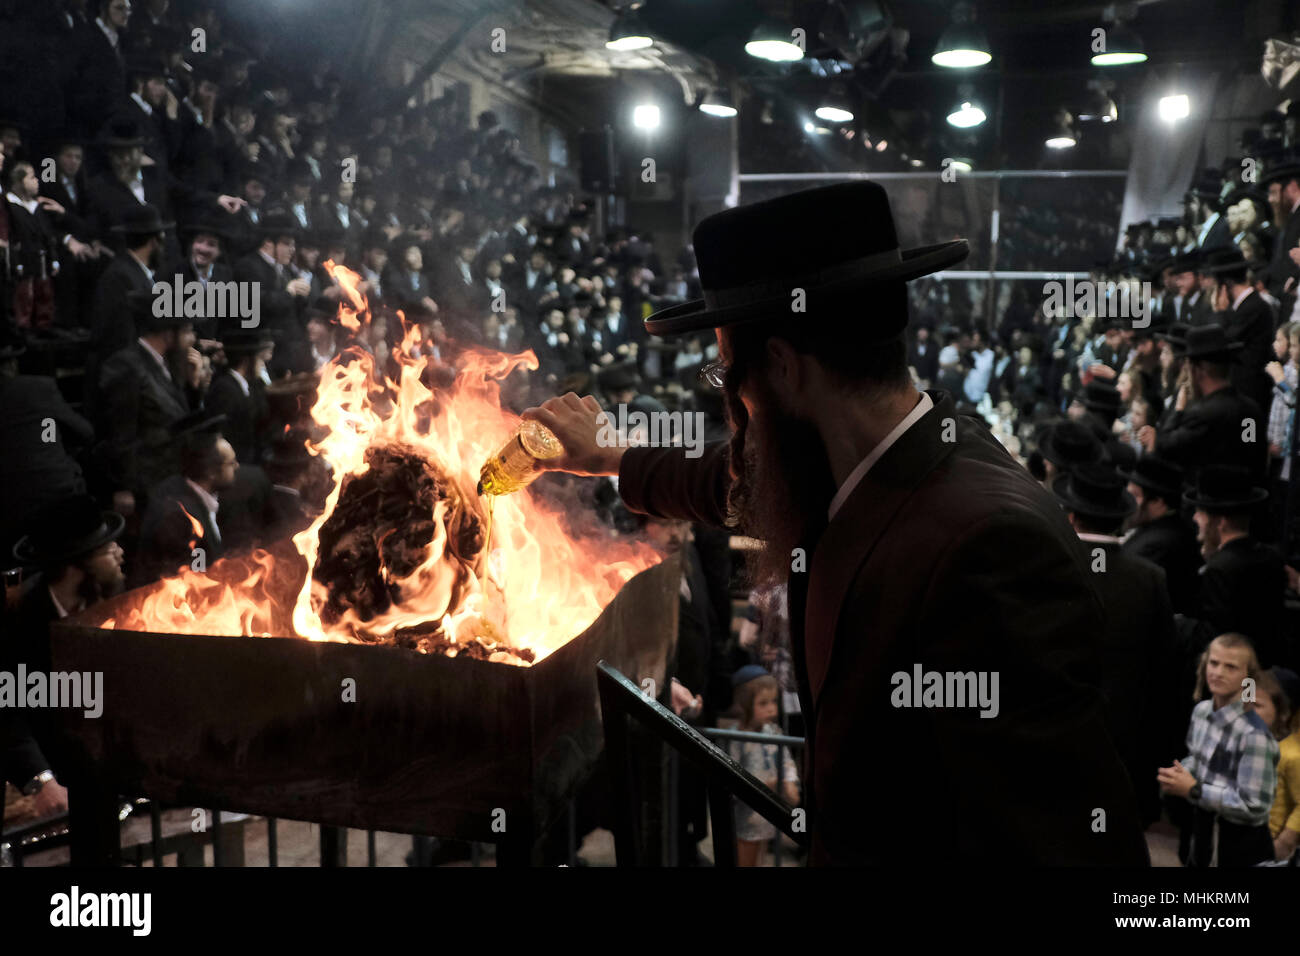 Jerusalem, Israel 02 May 2018. Ultra-Orthodox Jew pours oil into a bonfire in the Pinsk-Karlin Hassidic dynasty in Mea Shearim religious neighborhood during the celebration of Lag BaOmer holiday which marks the celebration, interpreted by some as anniversary of death of Rabbi Shimon bar Yochai, one of Judaism's great sages some 1800 years ago and the day on which he revealed the deepest secrets of kabbalah a landmark text of Jewish mysticism Credit: Eddie Gerald/Alamy Live News - Stock Image